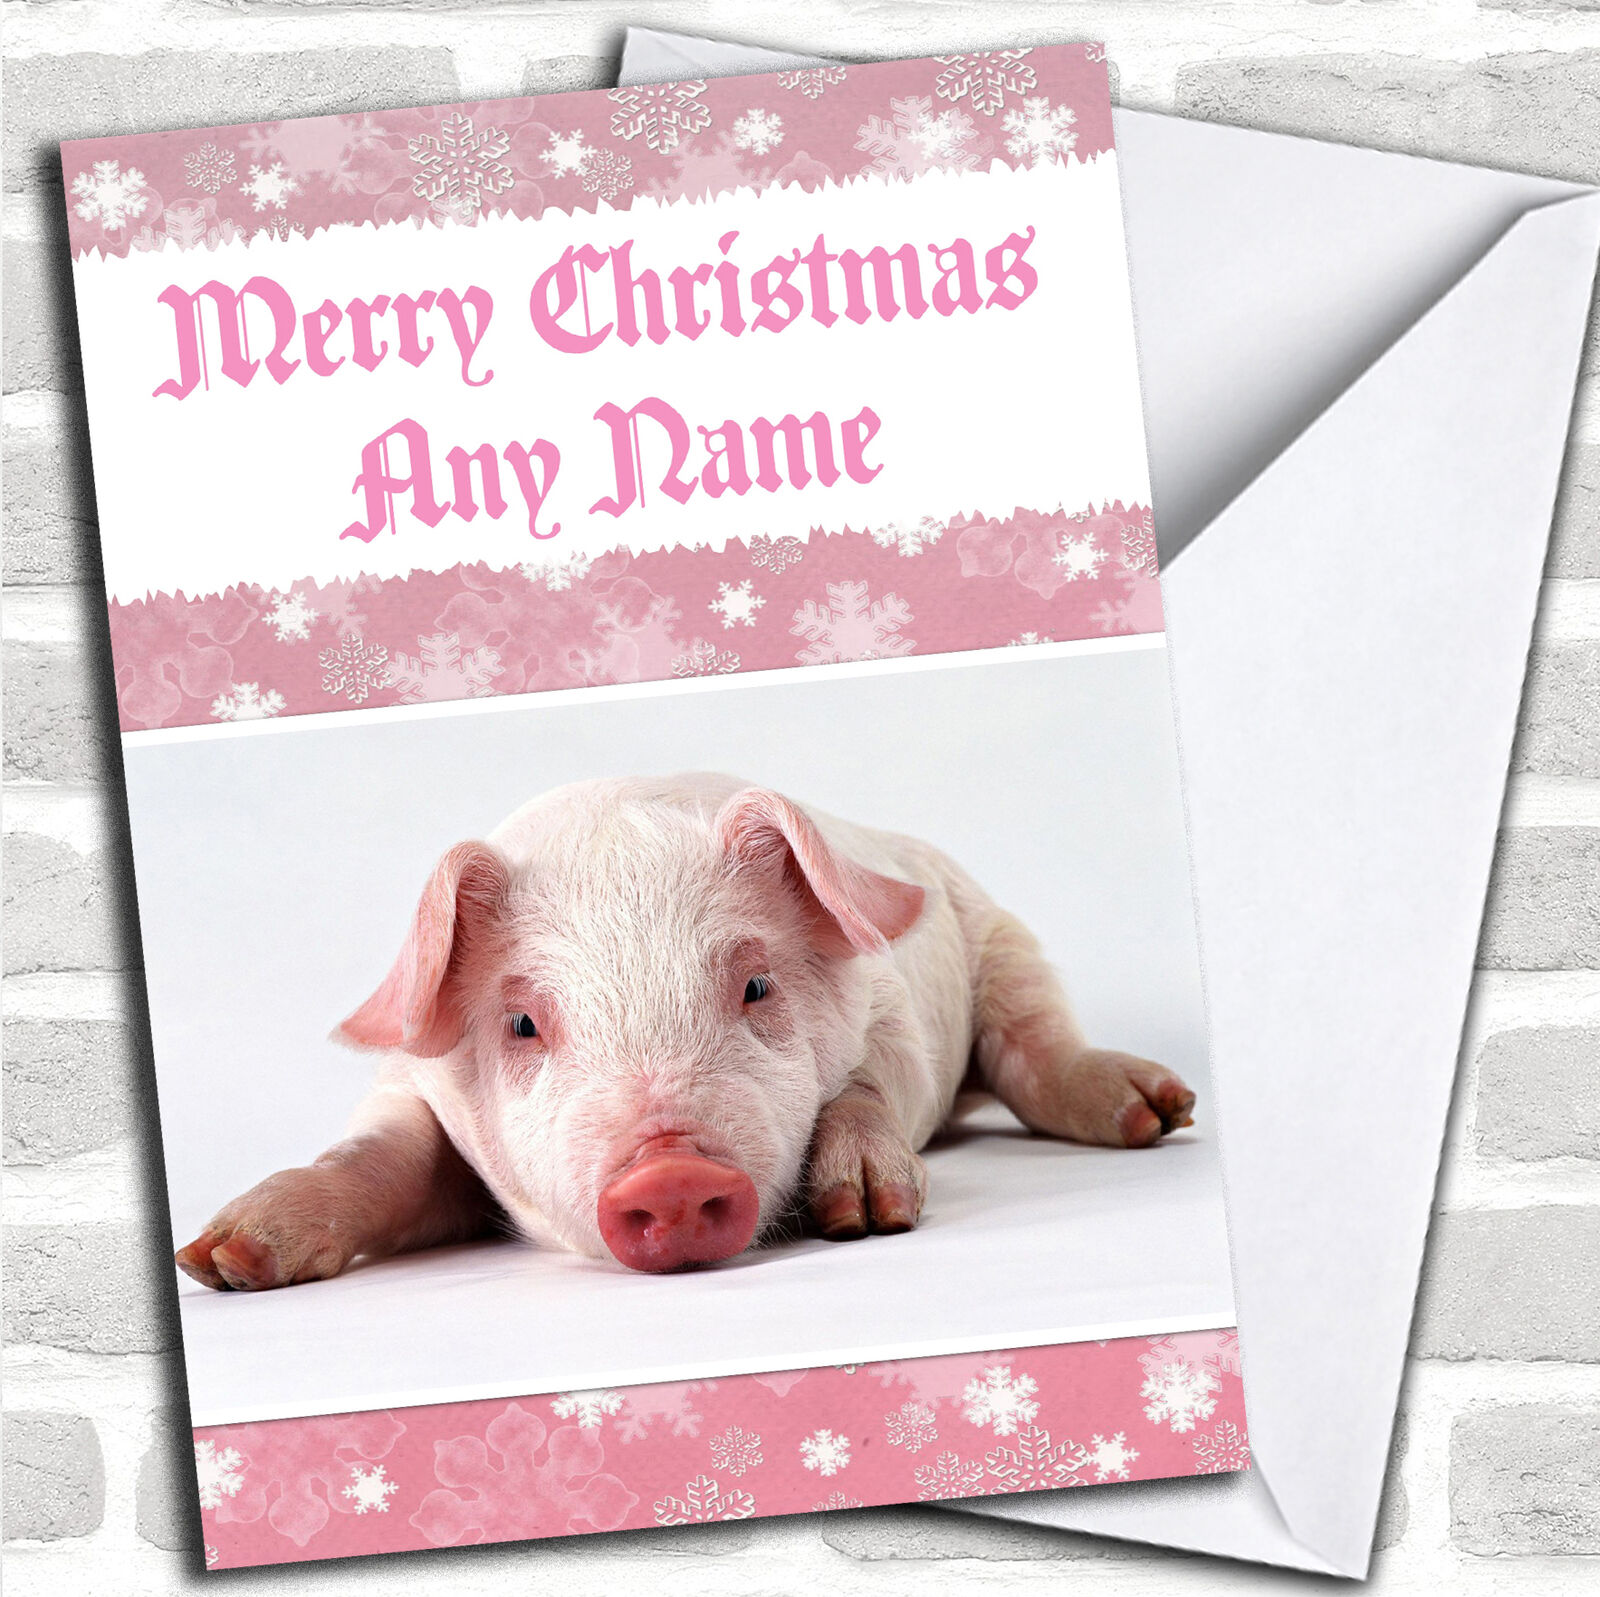 PIG PERSONALIZED CHRISTMAS Card - $6.59   PicClick